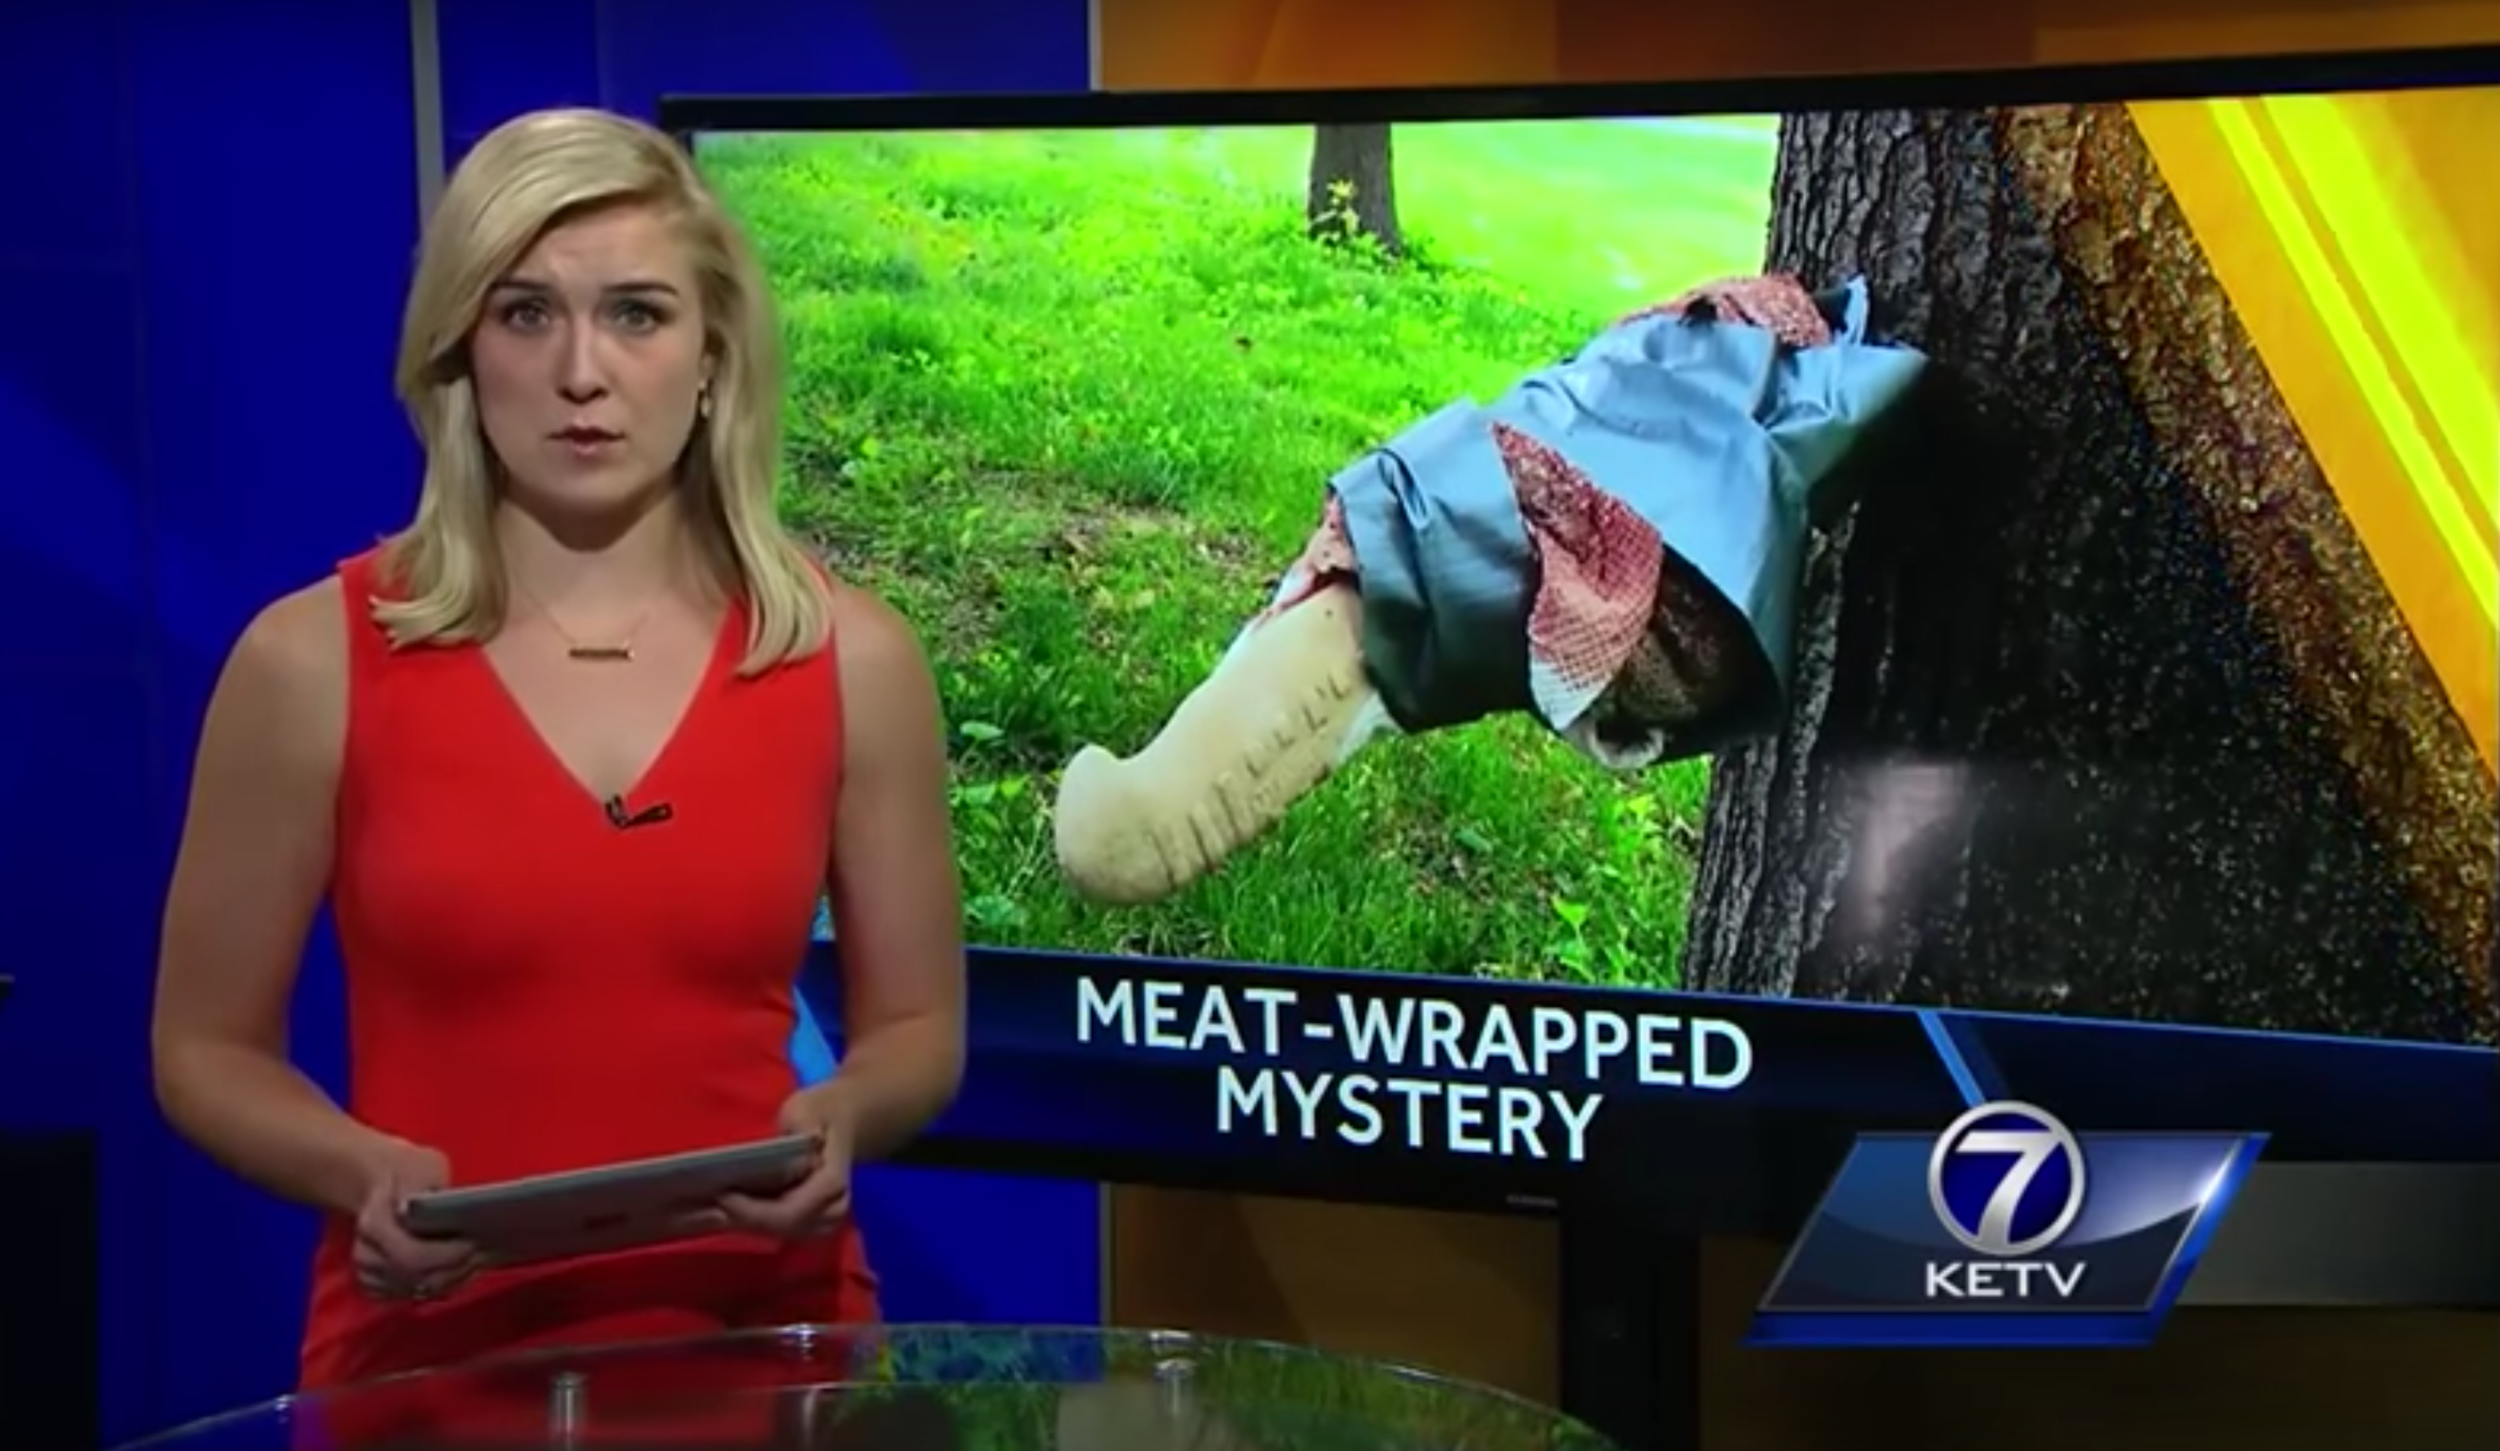 STABBING TREES WITH MEAT? (video)